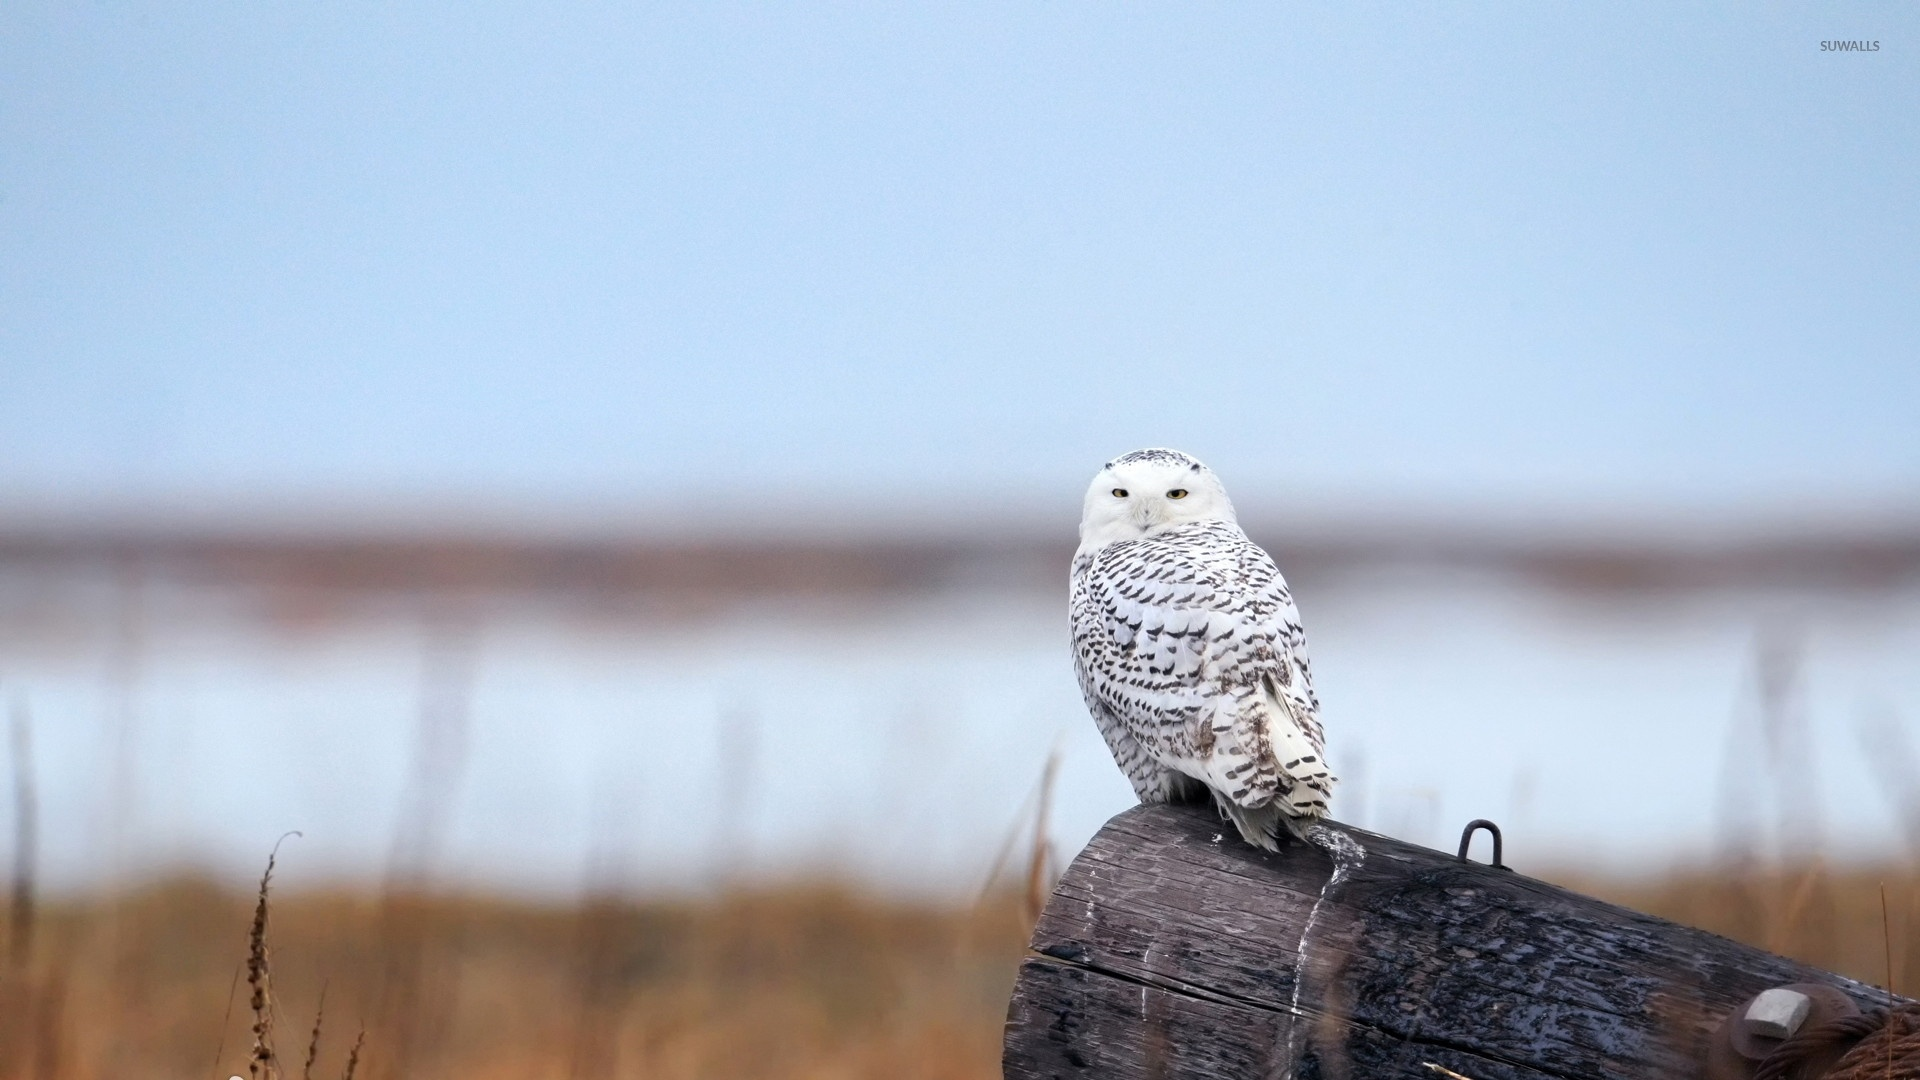 Polar Owl wallpaper photo hd